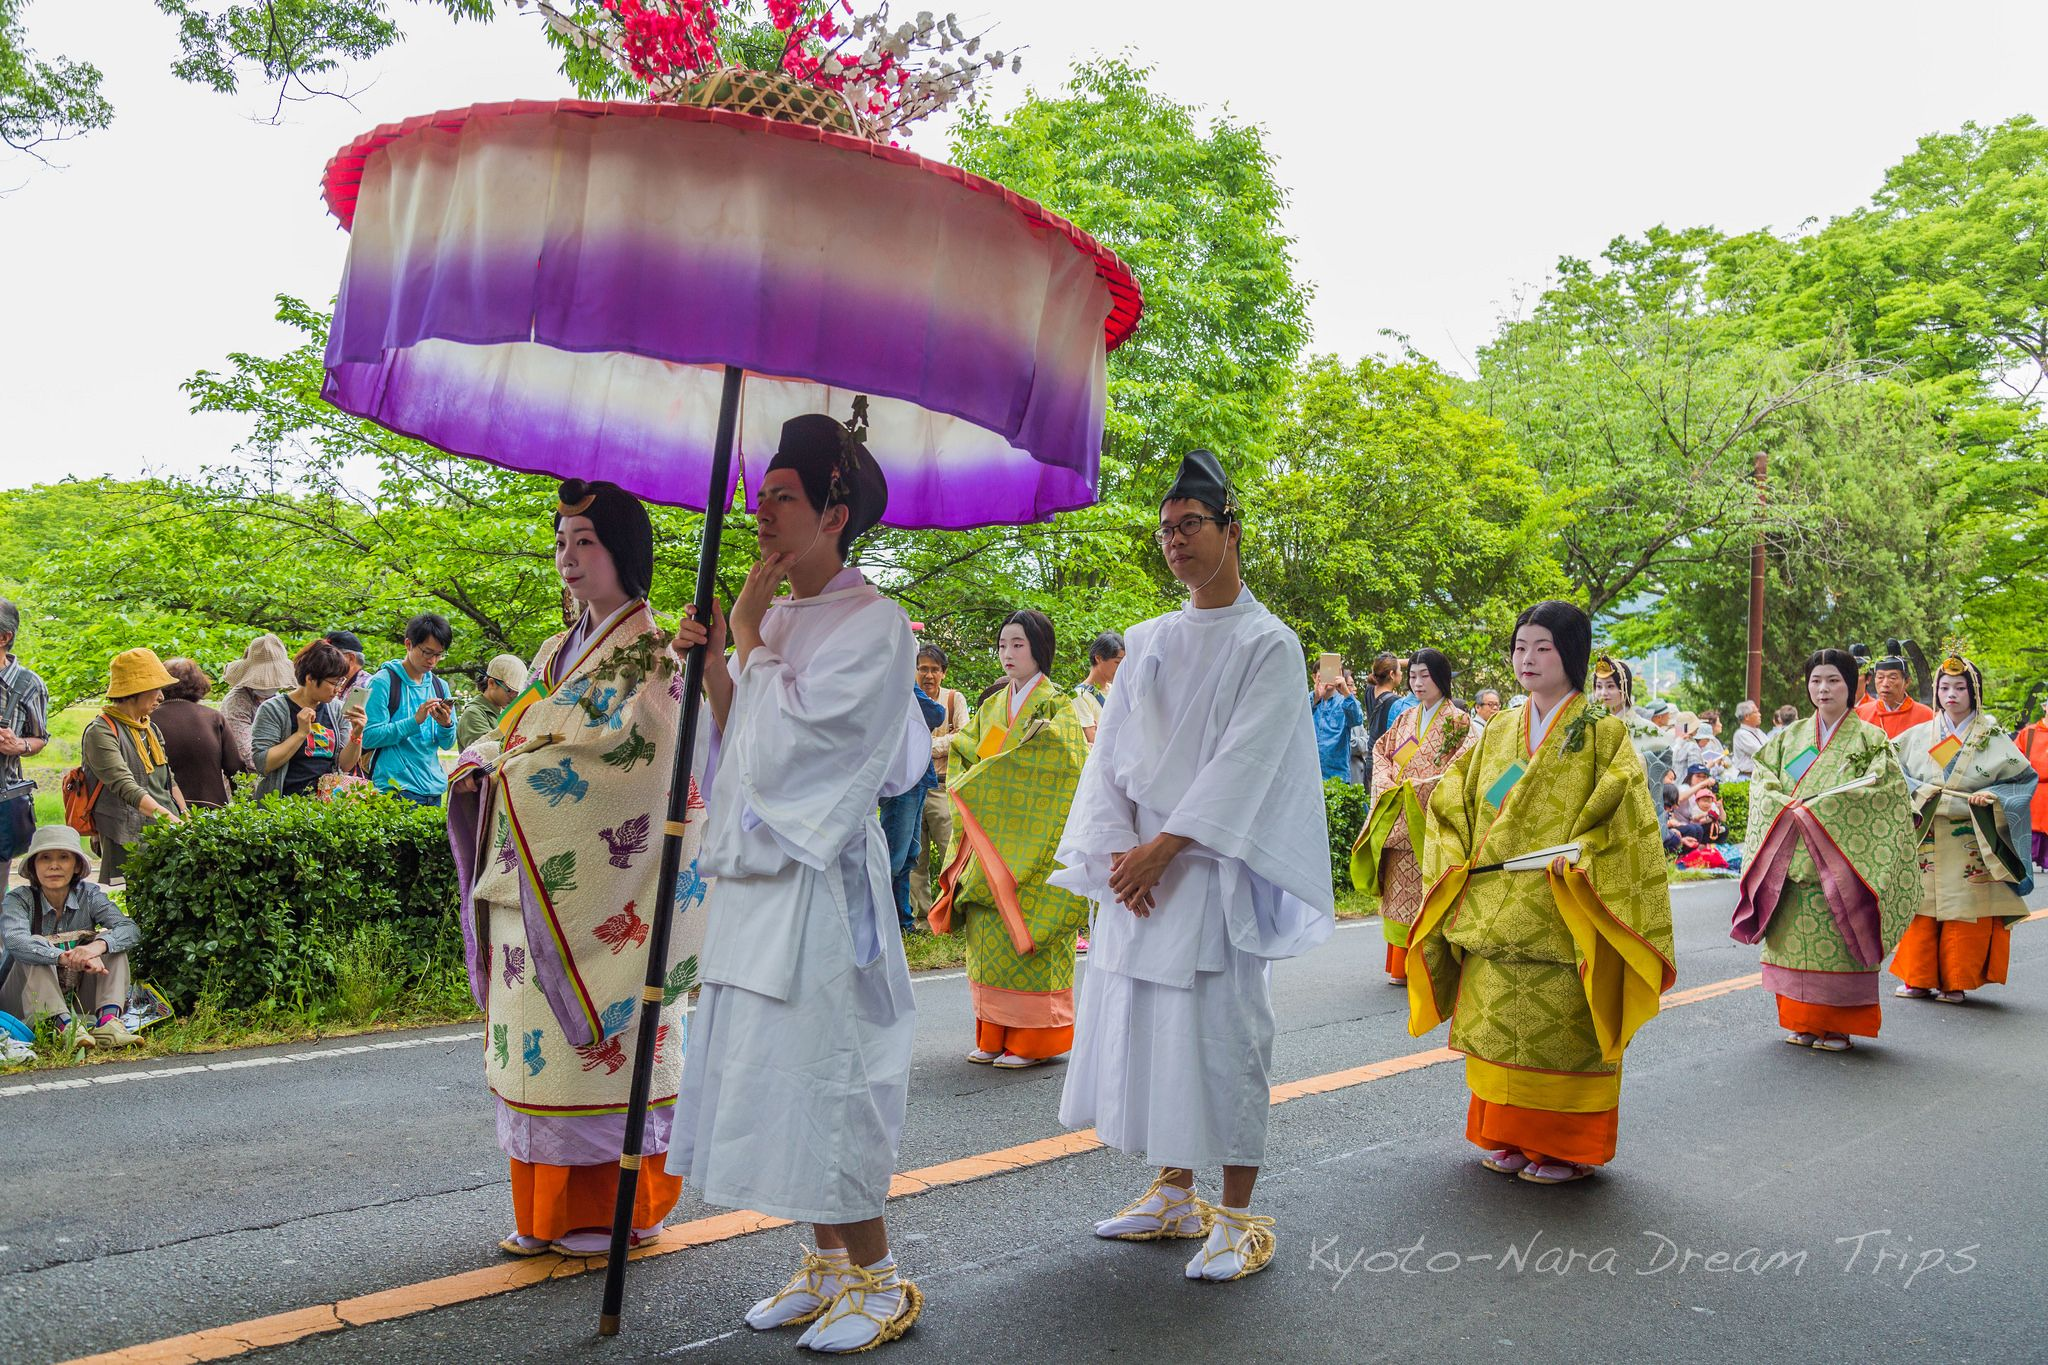 https://flic.kr/p/TArxpe | Aoi Matsuri Procession Along the Kamo River in Kyoto, Japan. | Some of the different personages of the Aoi Matsuri (葵祭) 2017 walking along the Kamo Kaido road. They are headed for the Kamigamo shrine the final stop of this matsuri.